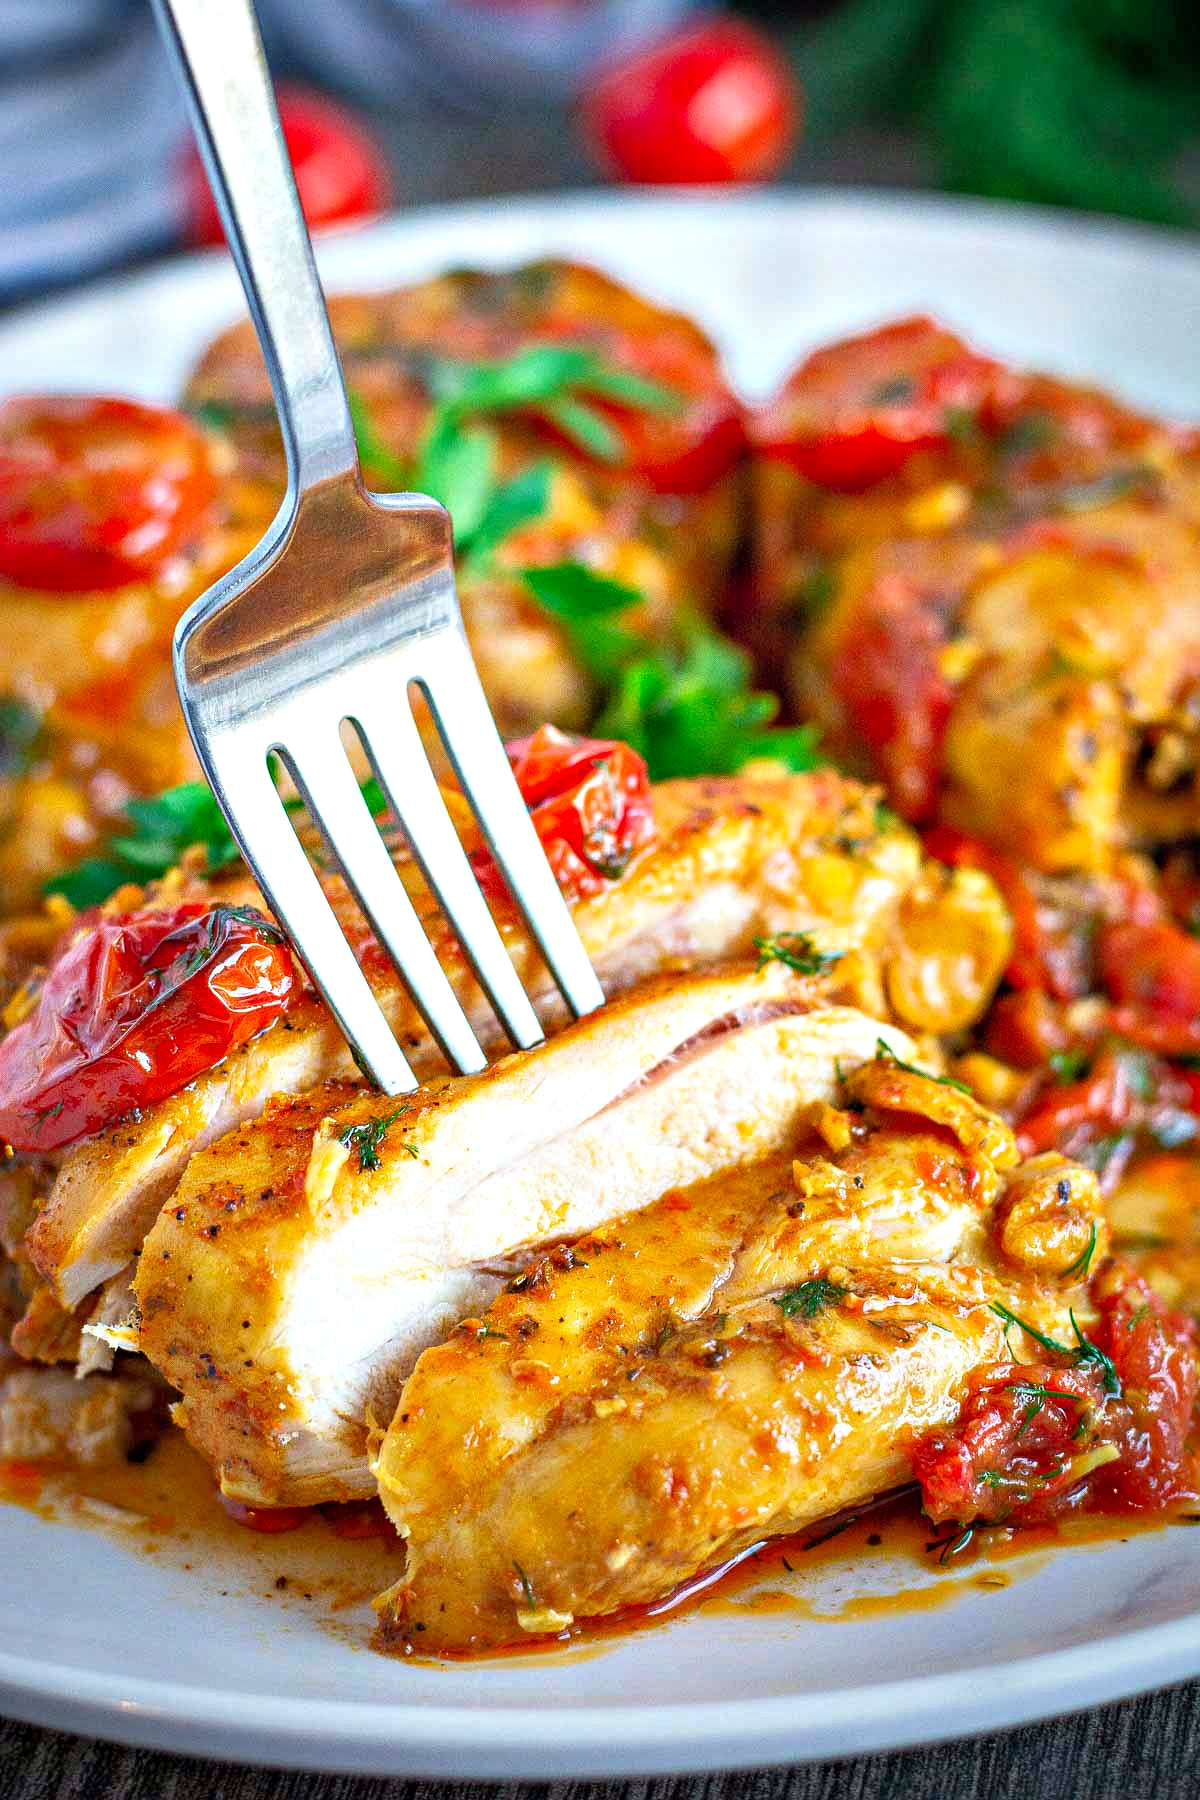 Pan Roasted Chicken Thighs with Cherry Tomatoes